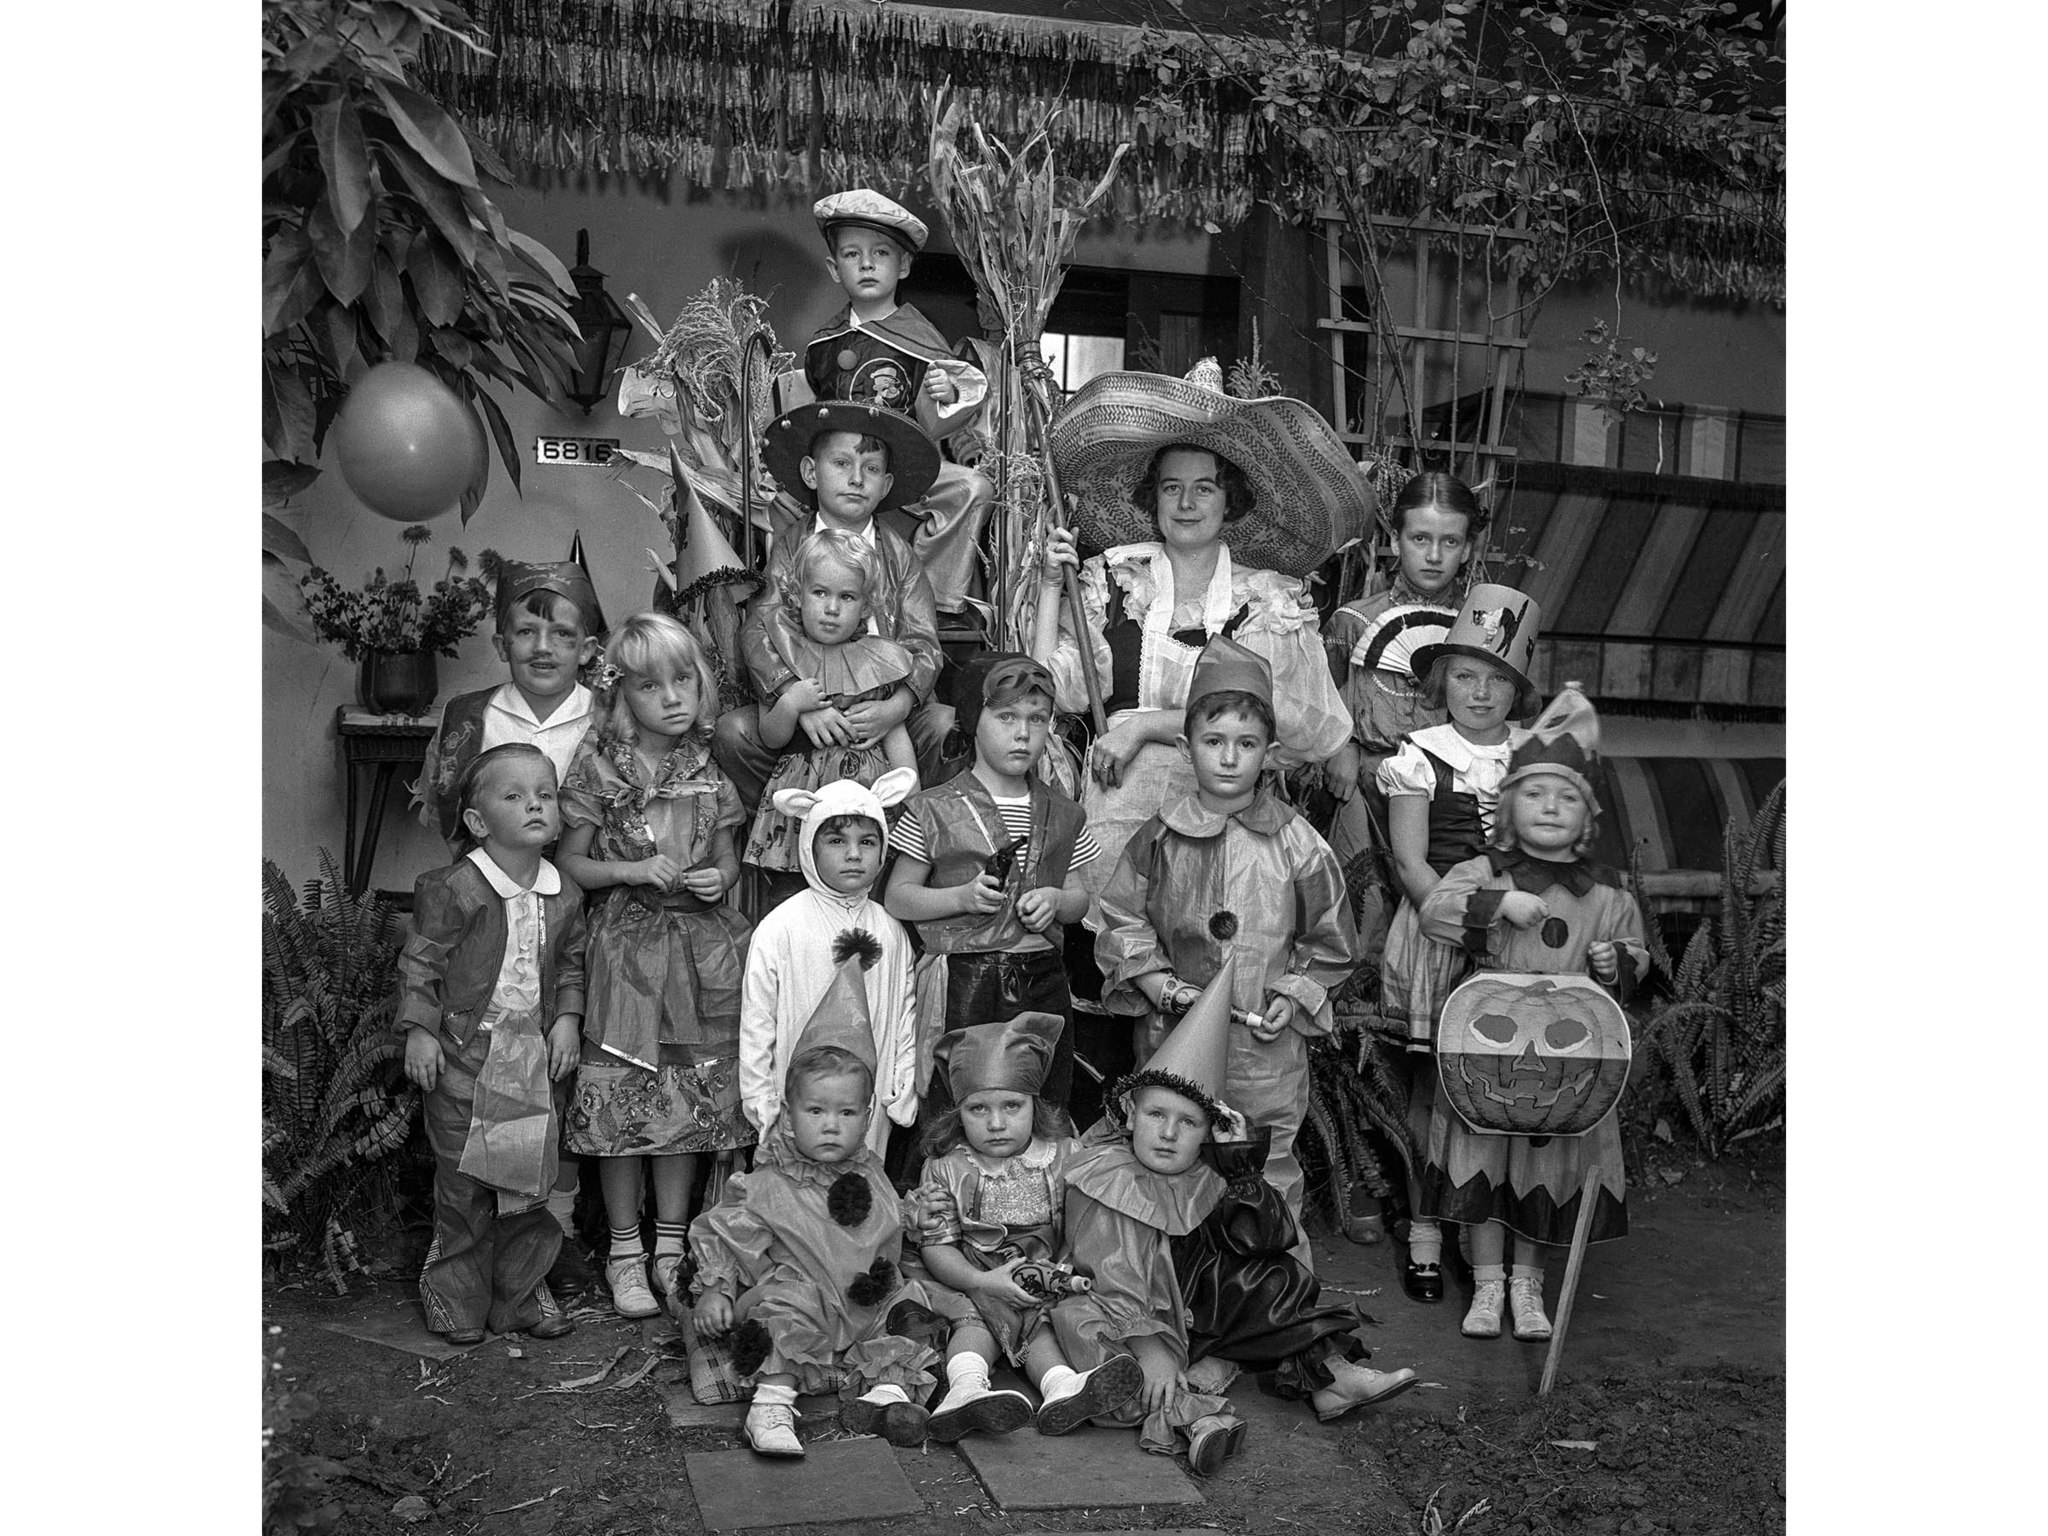 Oct. 31, 1935: Group photo of children in costume for Halloween party. The party was at the Hollywoo